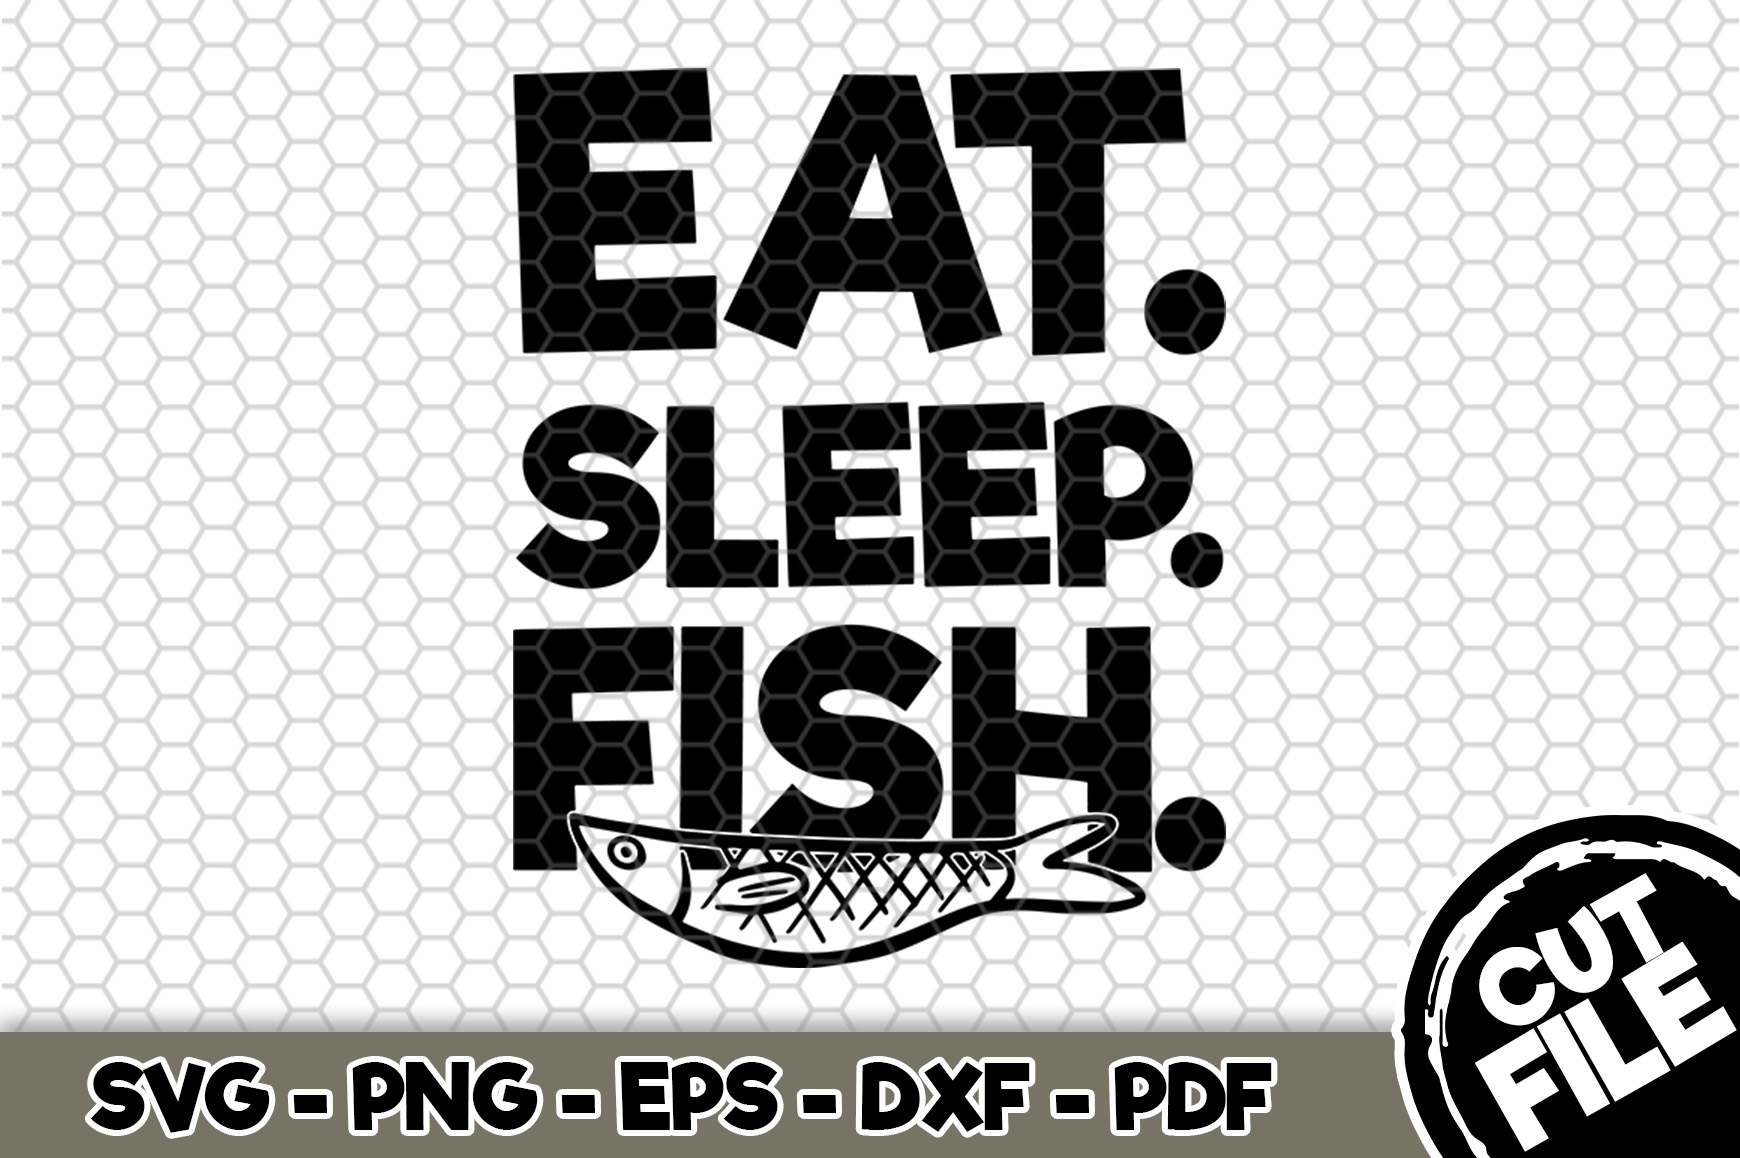 Download Free Eat Sleep Fish Graphic By Svgexpress Creative Fabrica for Cricut Explore, Silhouette and other cutting machines.